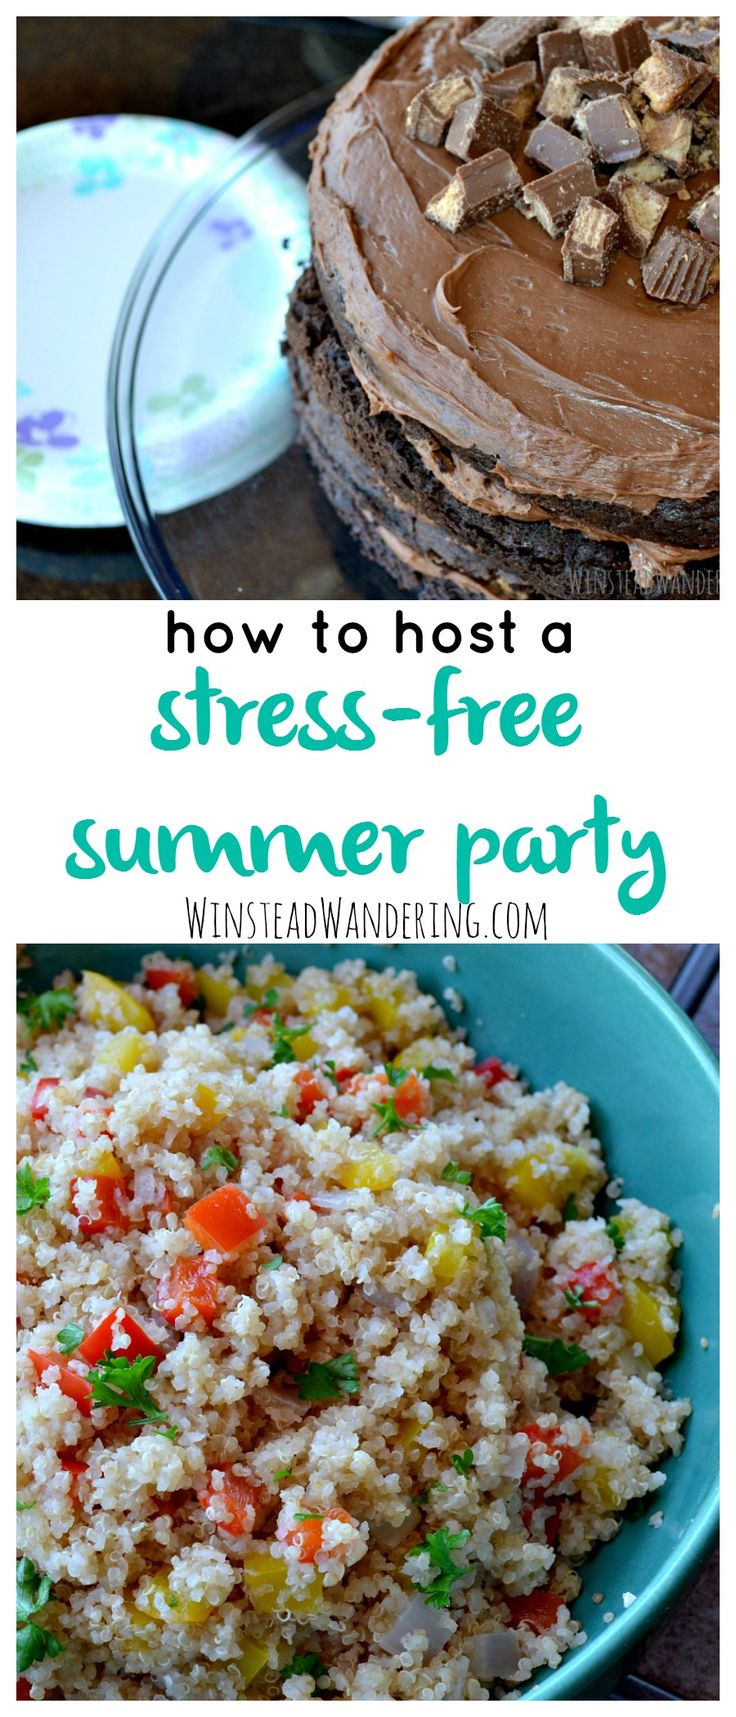 50 best Summer Fun images on Pinterest   Canning supplies, Cards ...